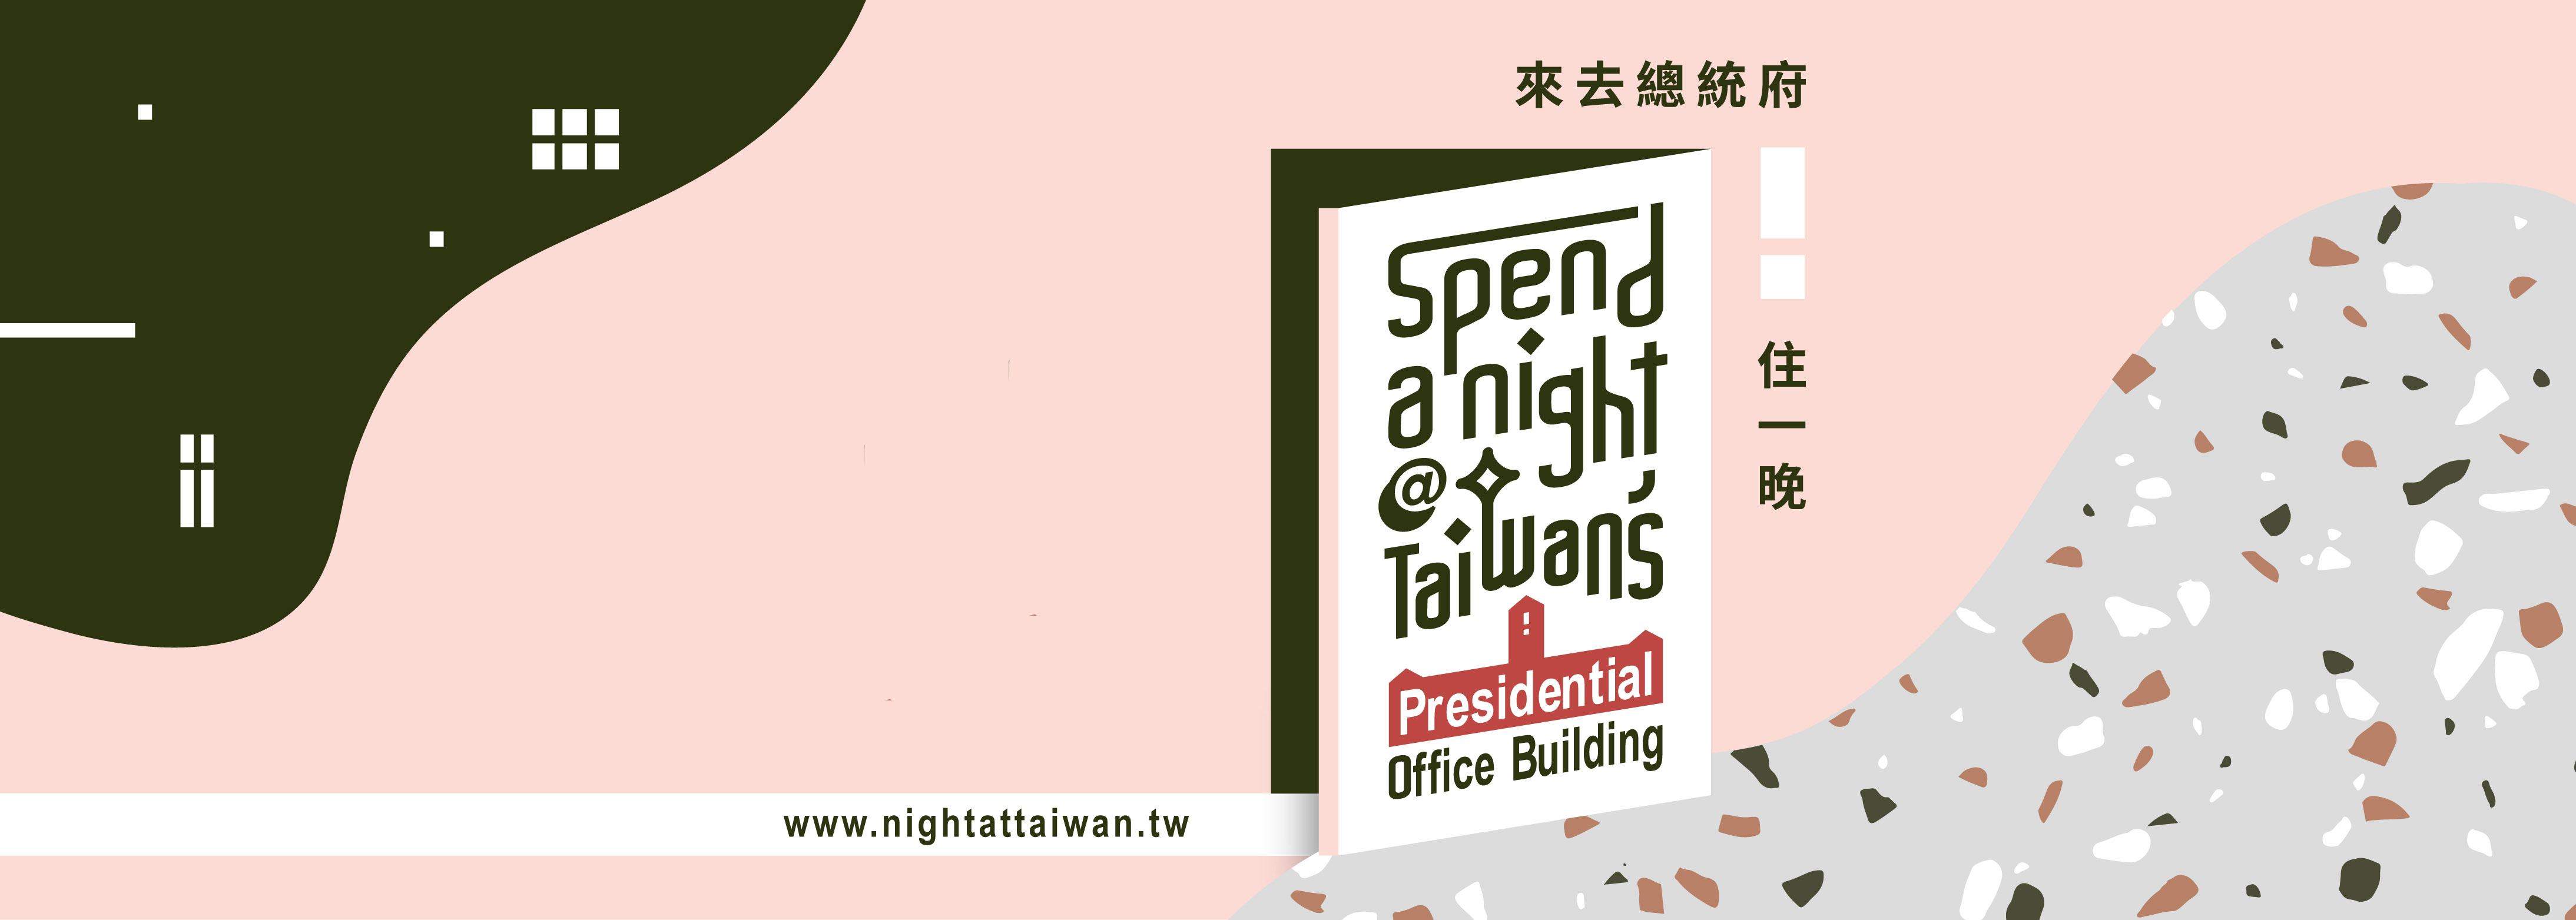 Spend A Night at Presidential Office Building